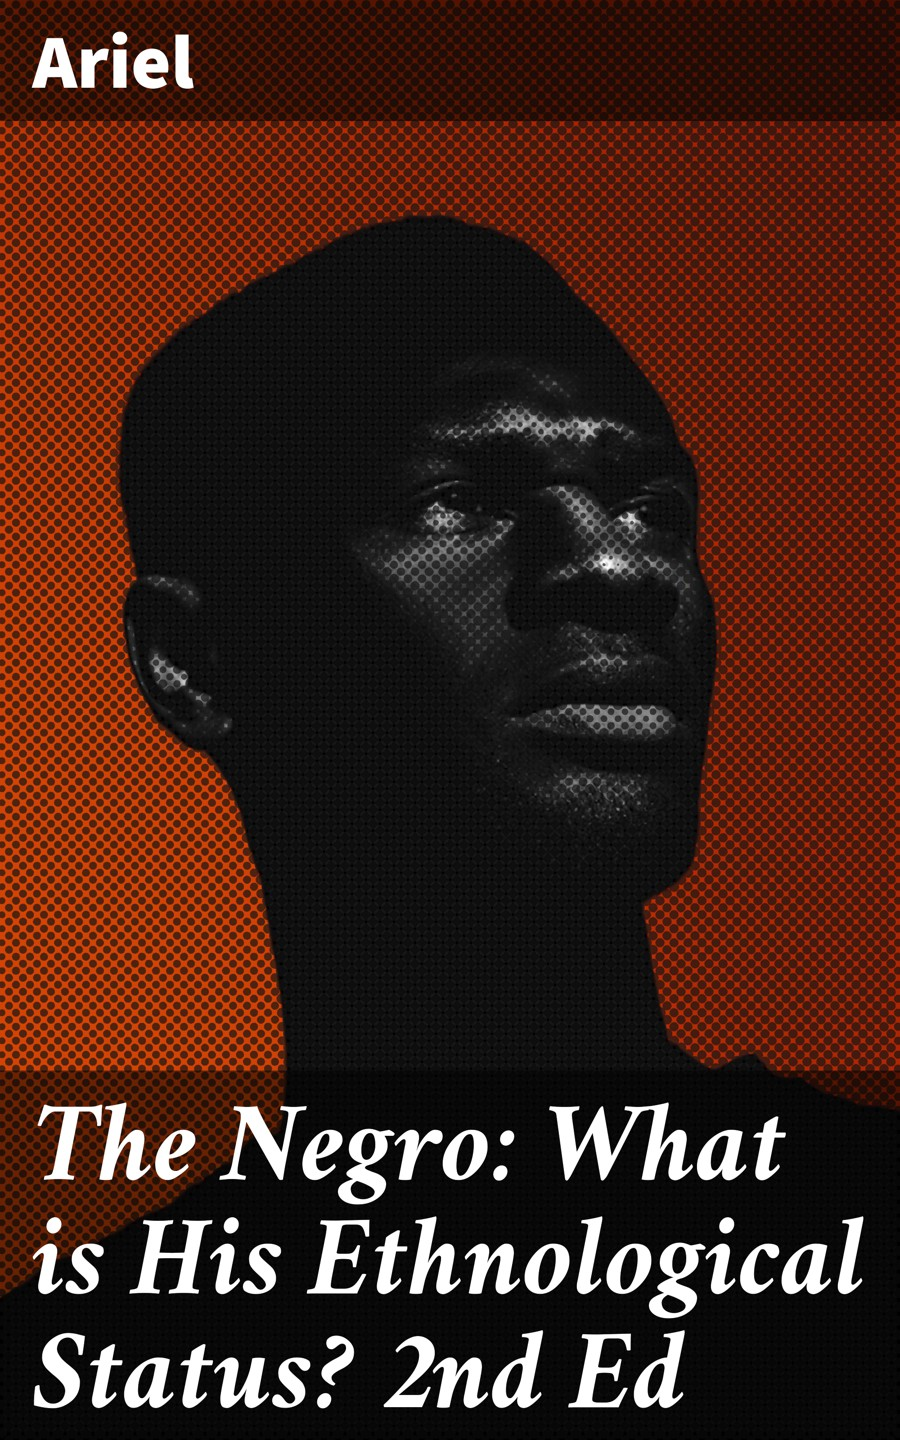 Ariel The Negro: What is His Ethnological Status? 2nd Ed ed brubaker marc silvestri x men messiah complex 1 2nd print